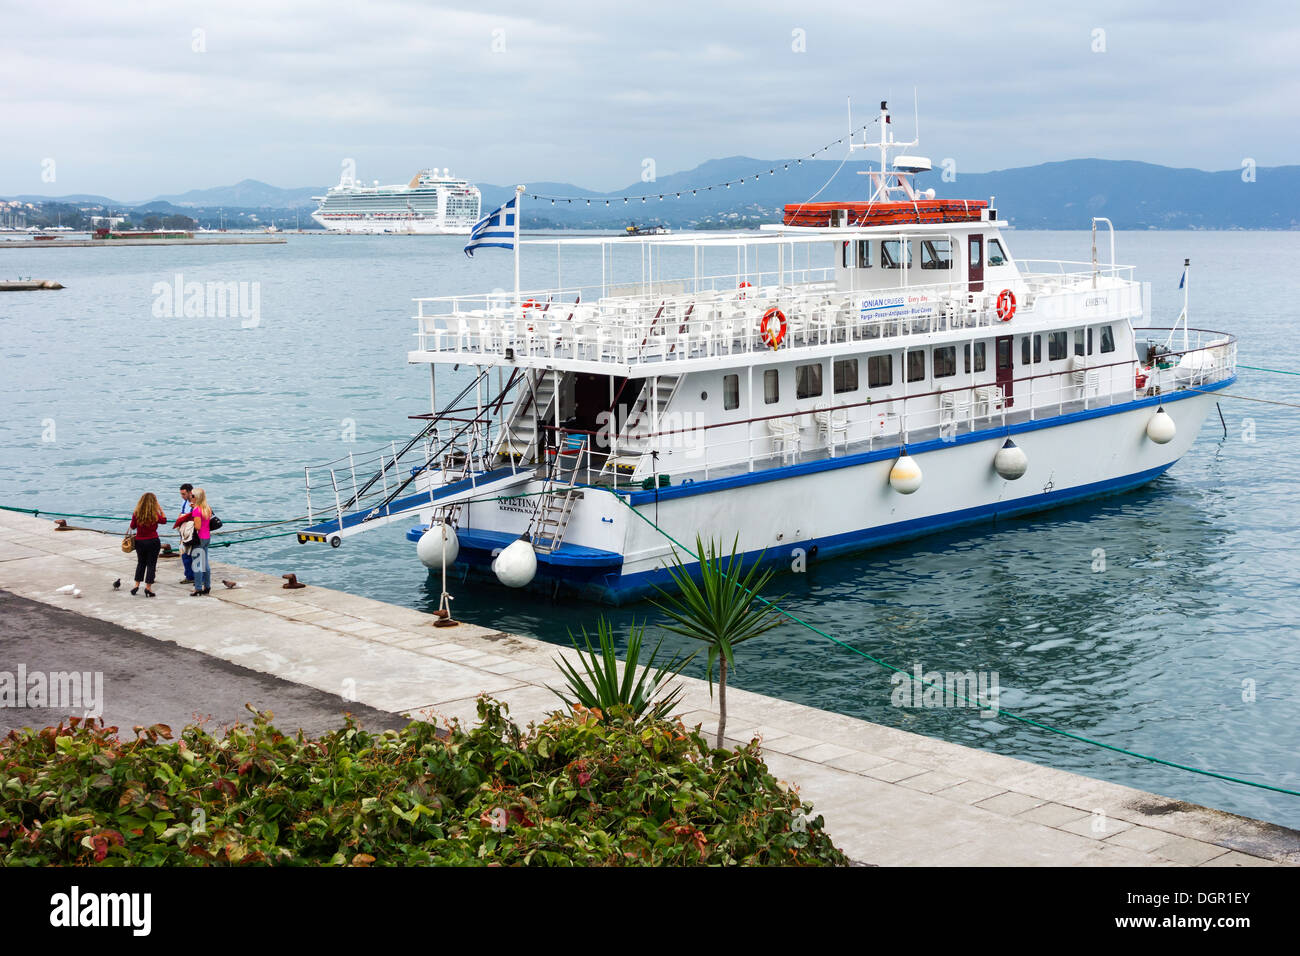 Boat trip ferry boat tourism on water bay of corfu old town boat trip ferry boat tourism on water bay of corfu old town corfu island ionian islands greek islands greece europe sciox Images